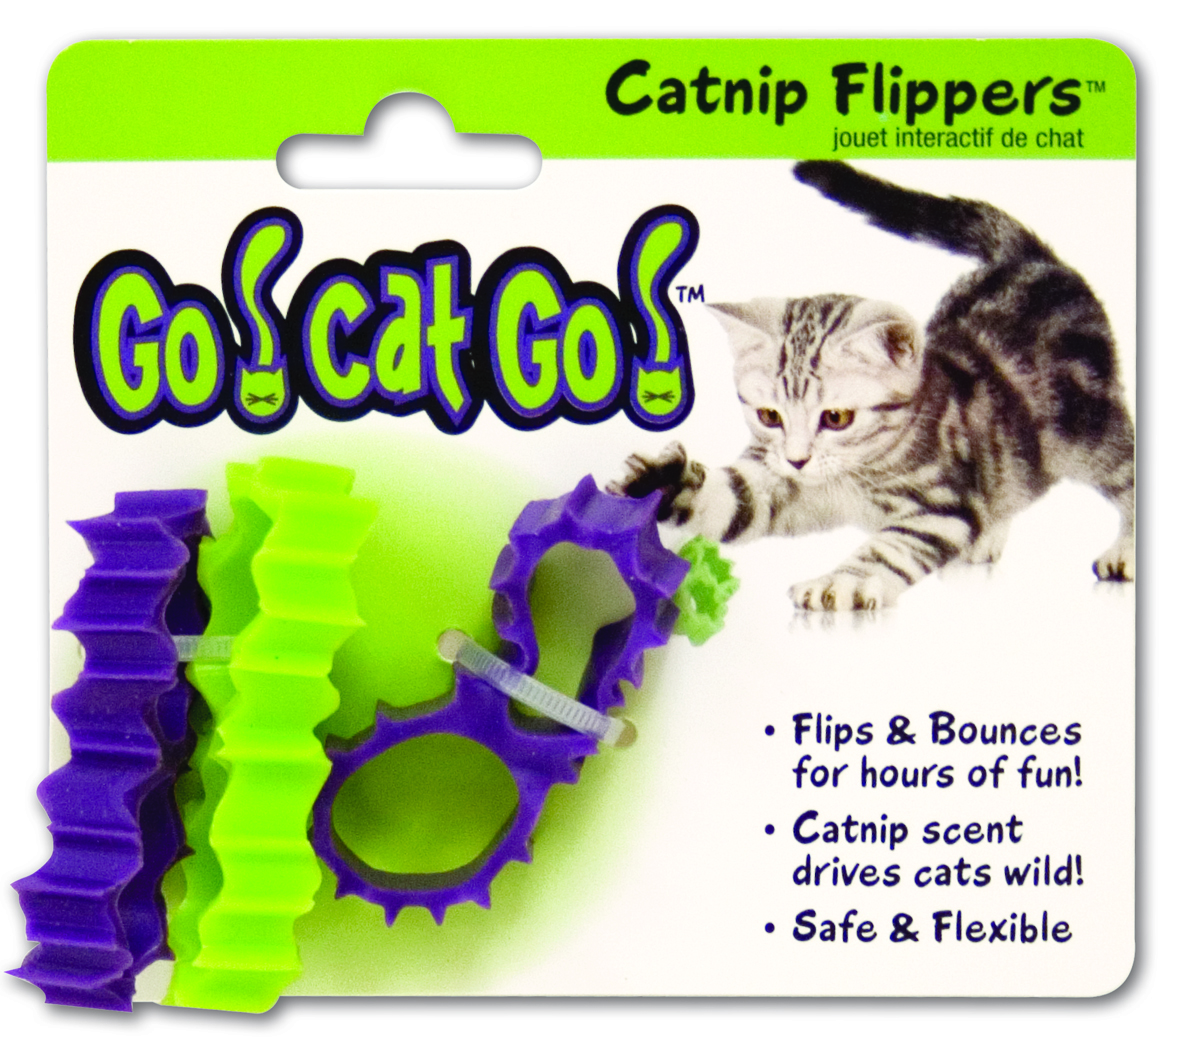 Go! Cat Go! Catnip Flippers